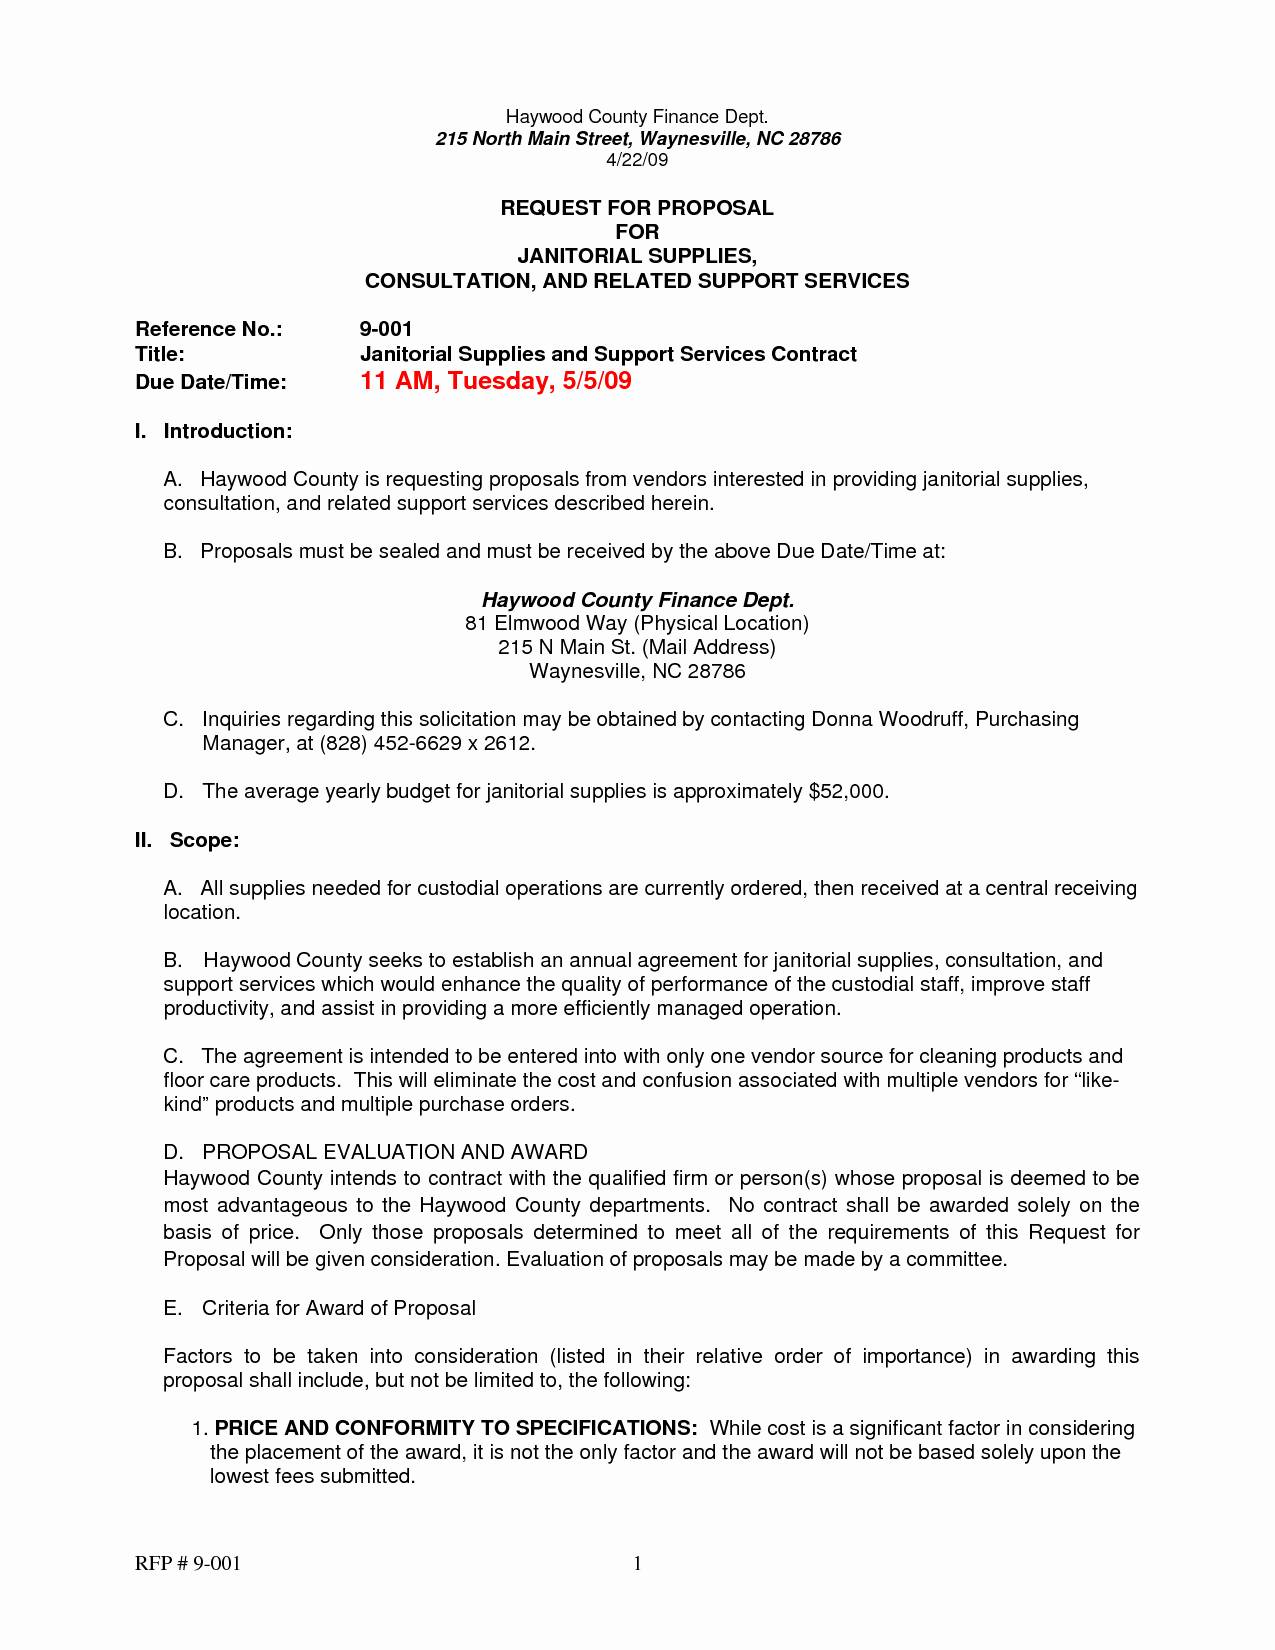 Rfp Request For Proposal Template